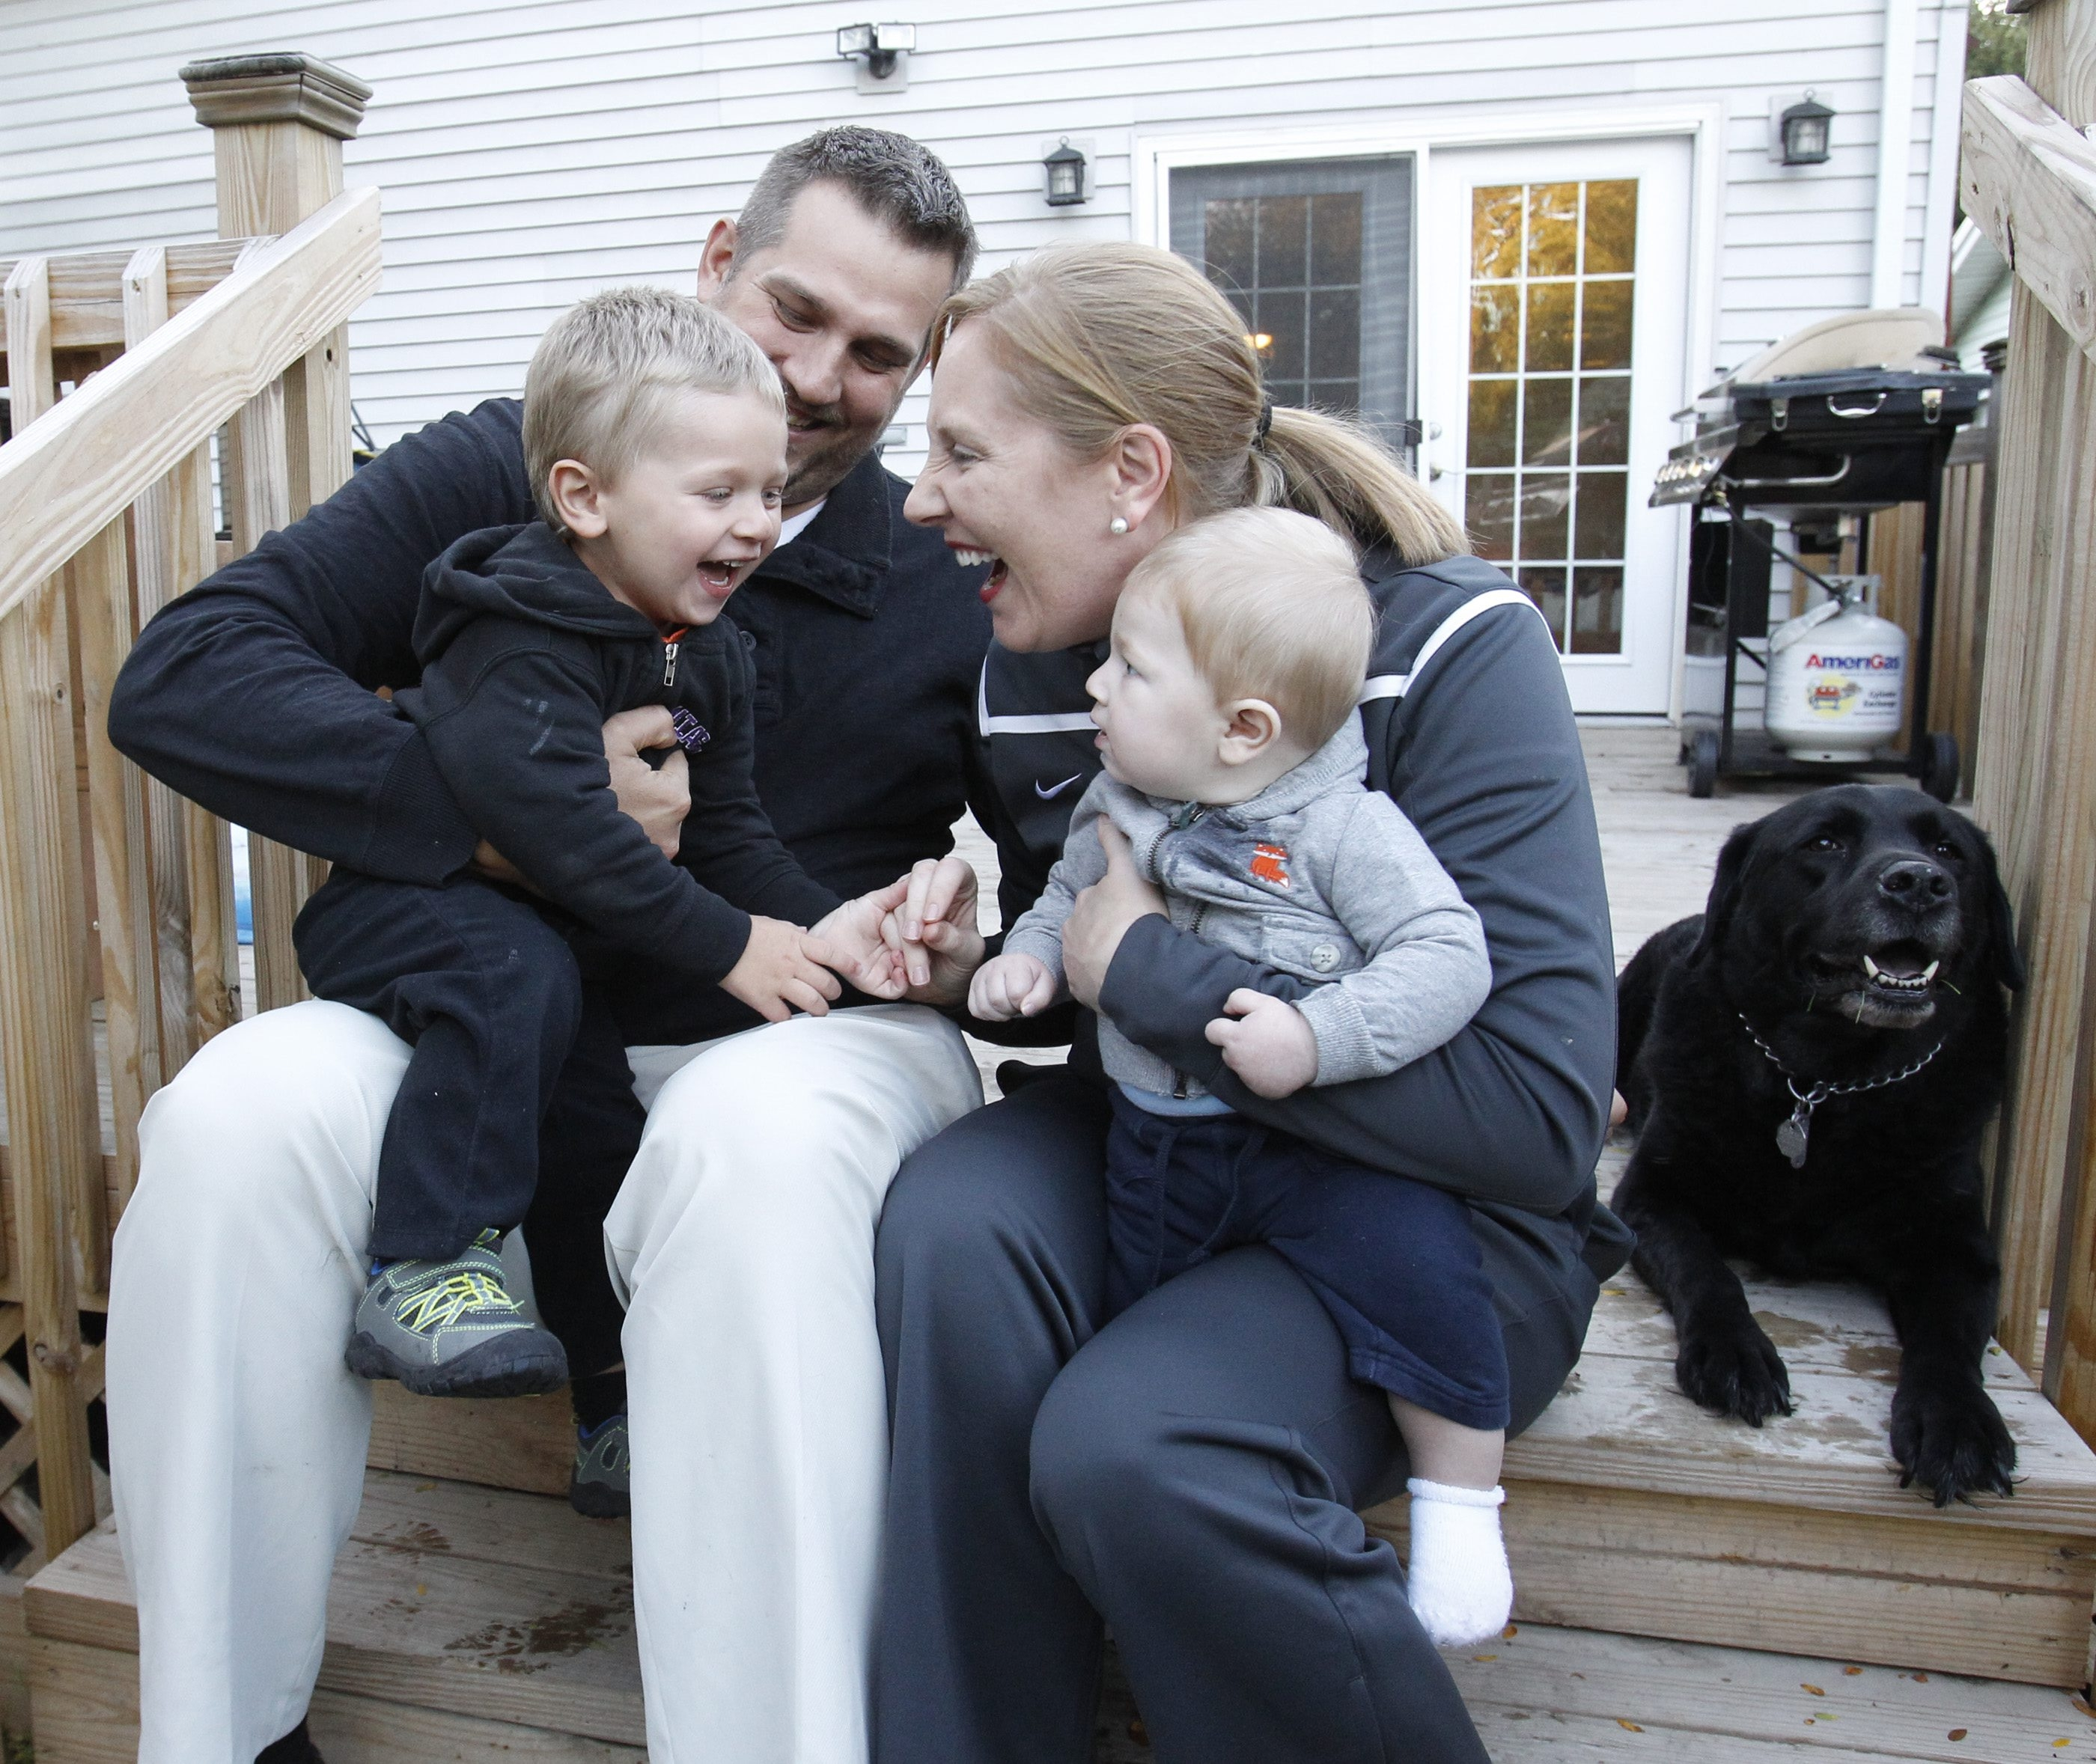 Niagara women's basketball coach Kendra Faustin has some family time at home, with her sons Cal and Blake, who is being held by Faustin's husband RJ. The family dog is Mason.